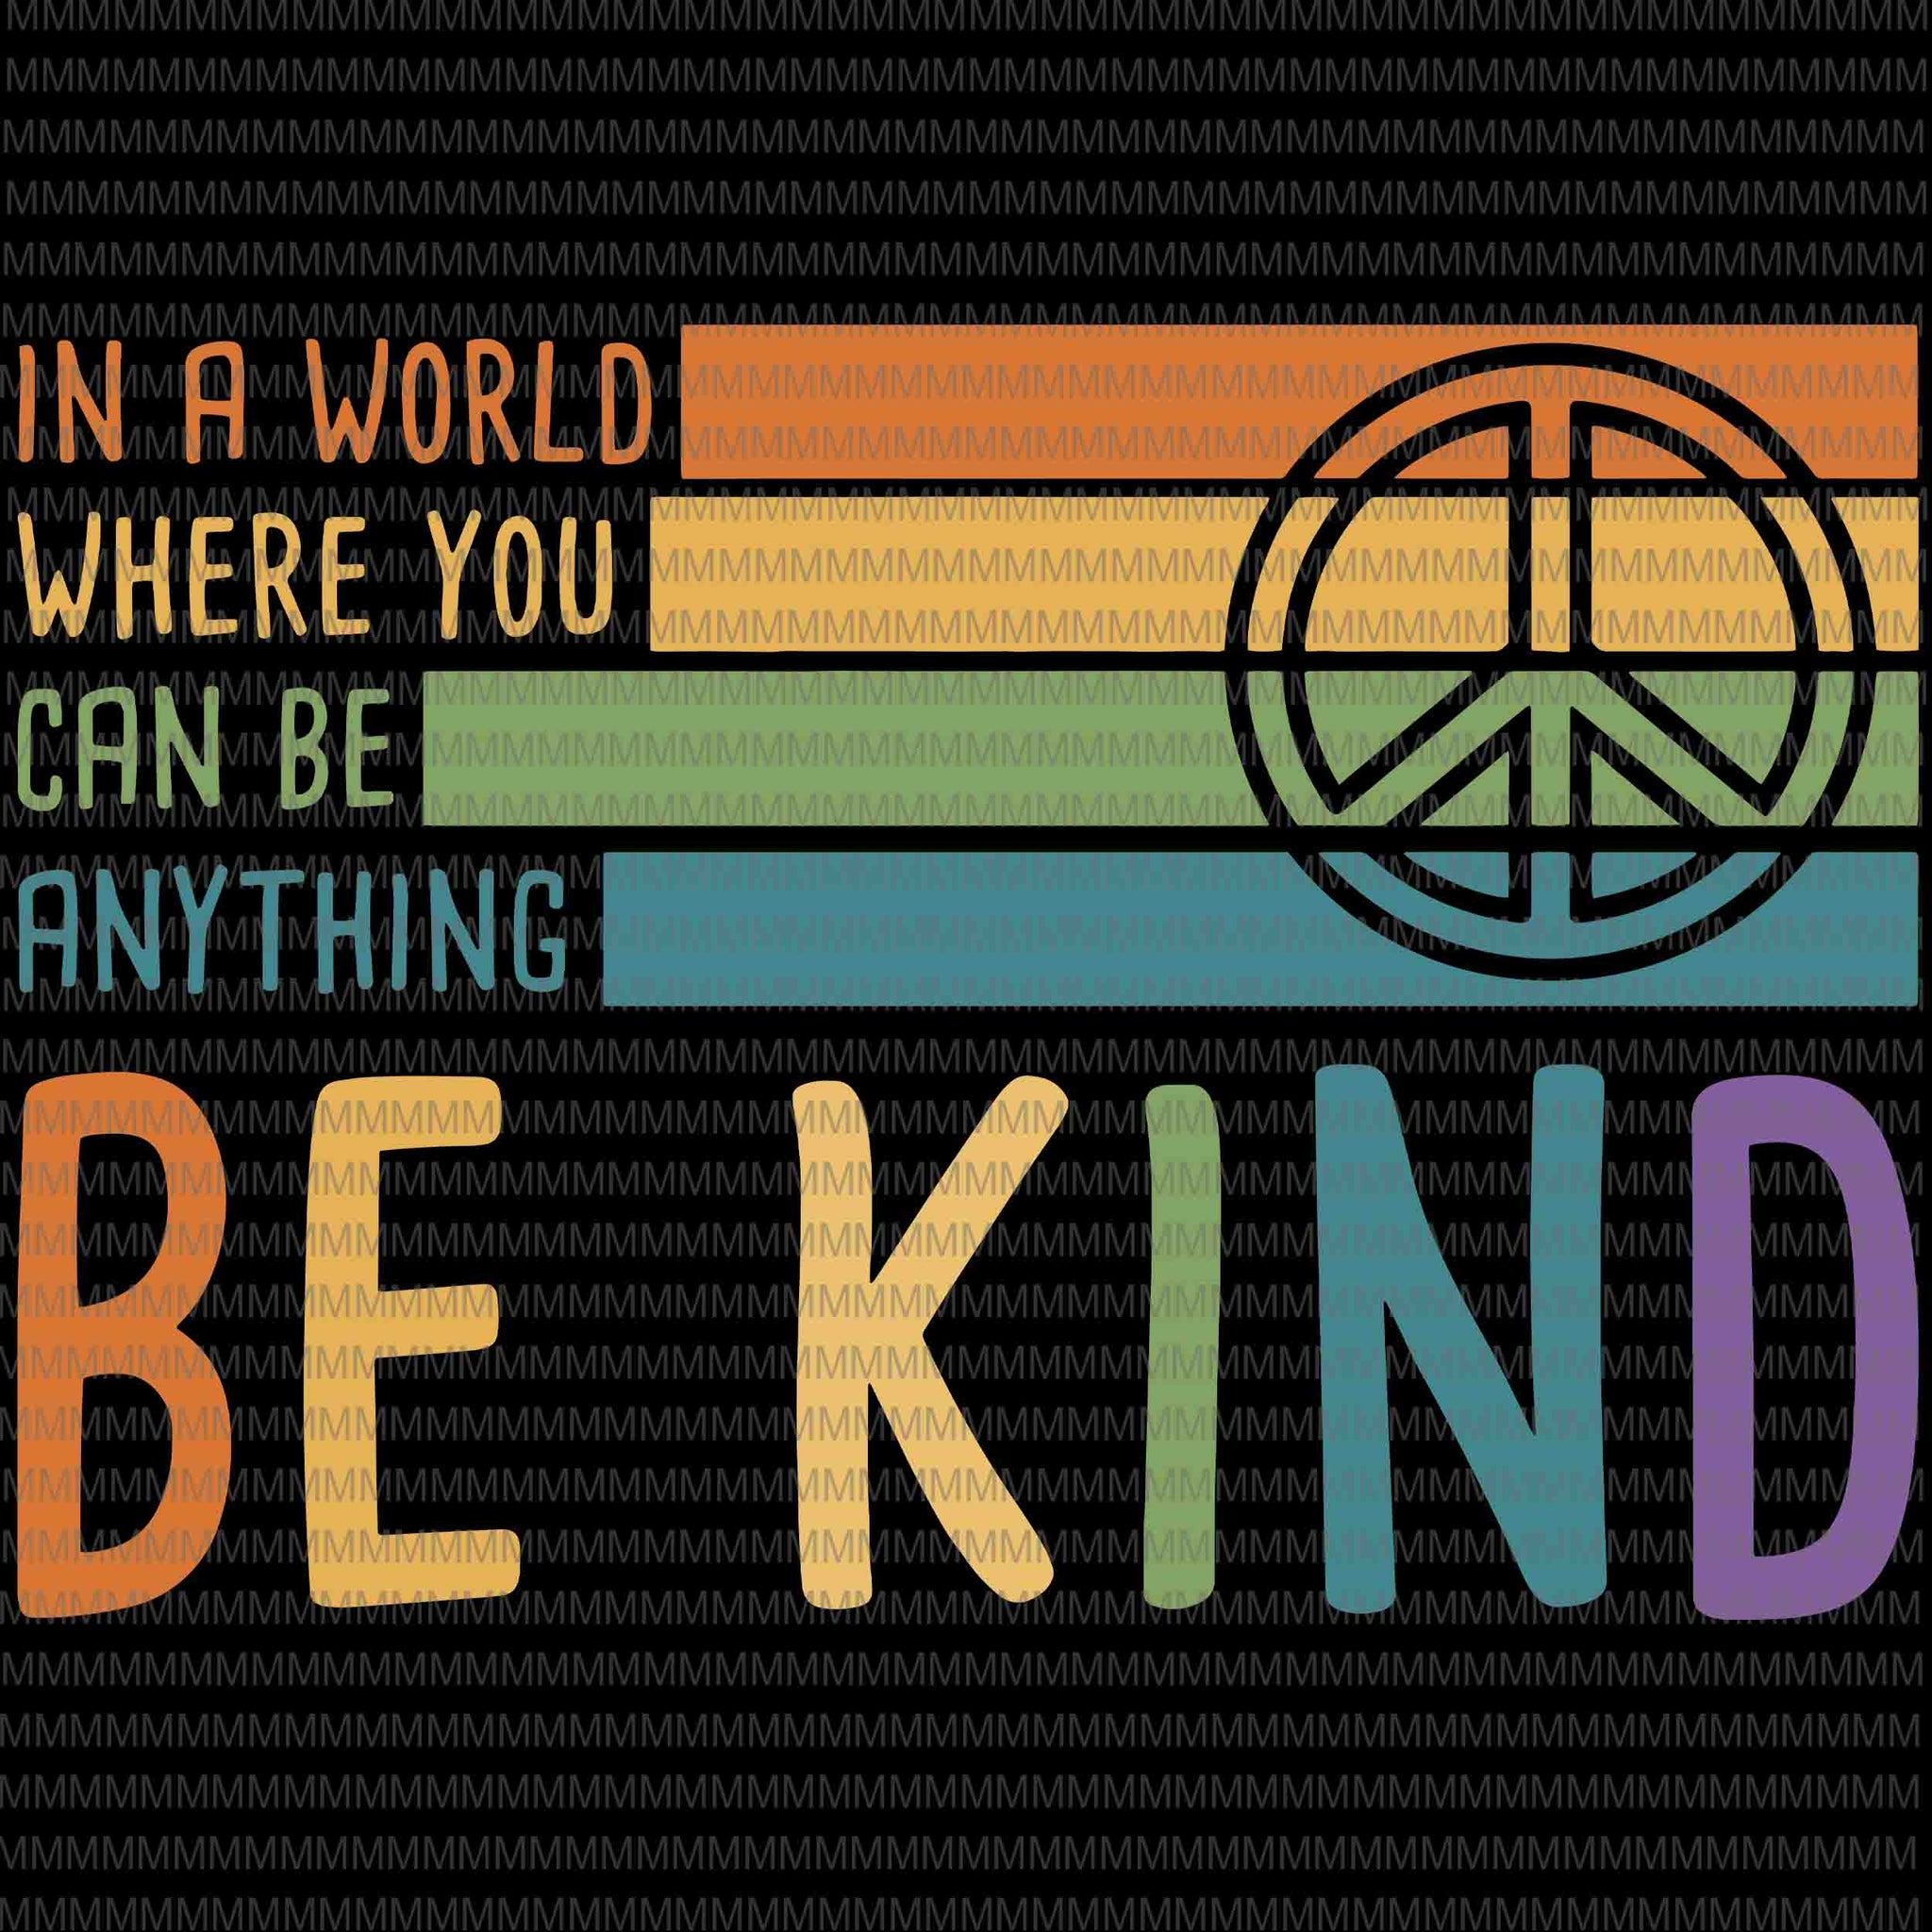 Be kind svg, in a world where you can be any thing svg, be kind vector, be kind design, be kind hand svg